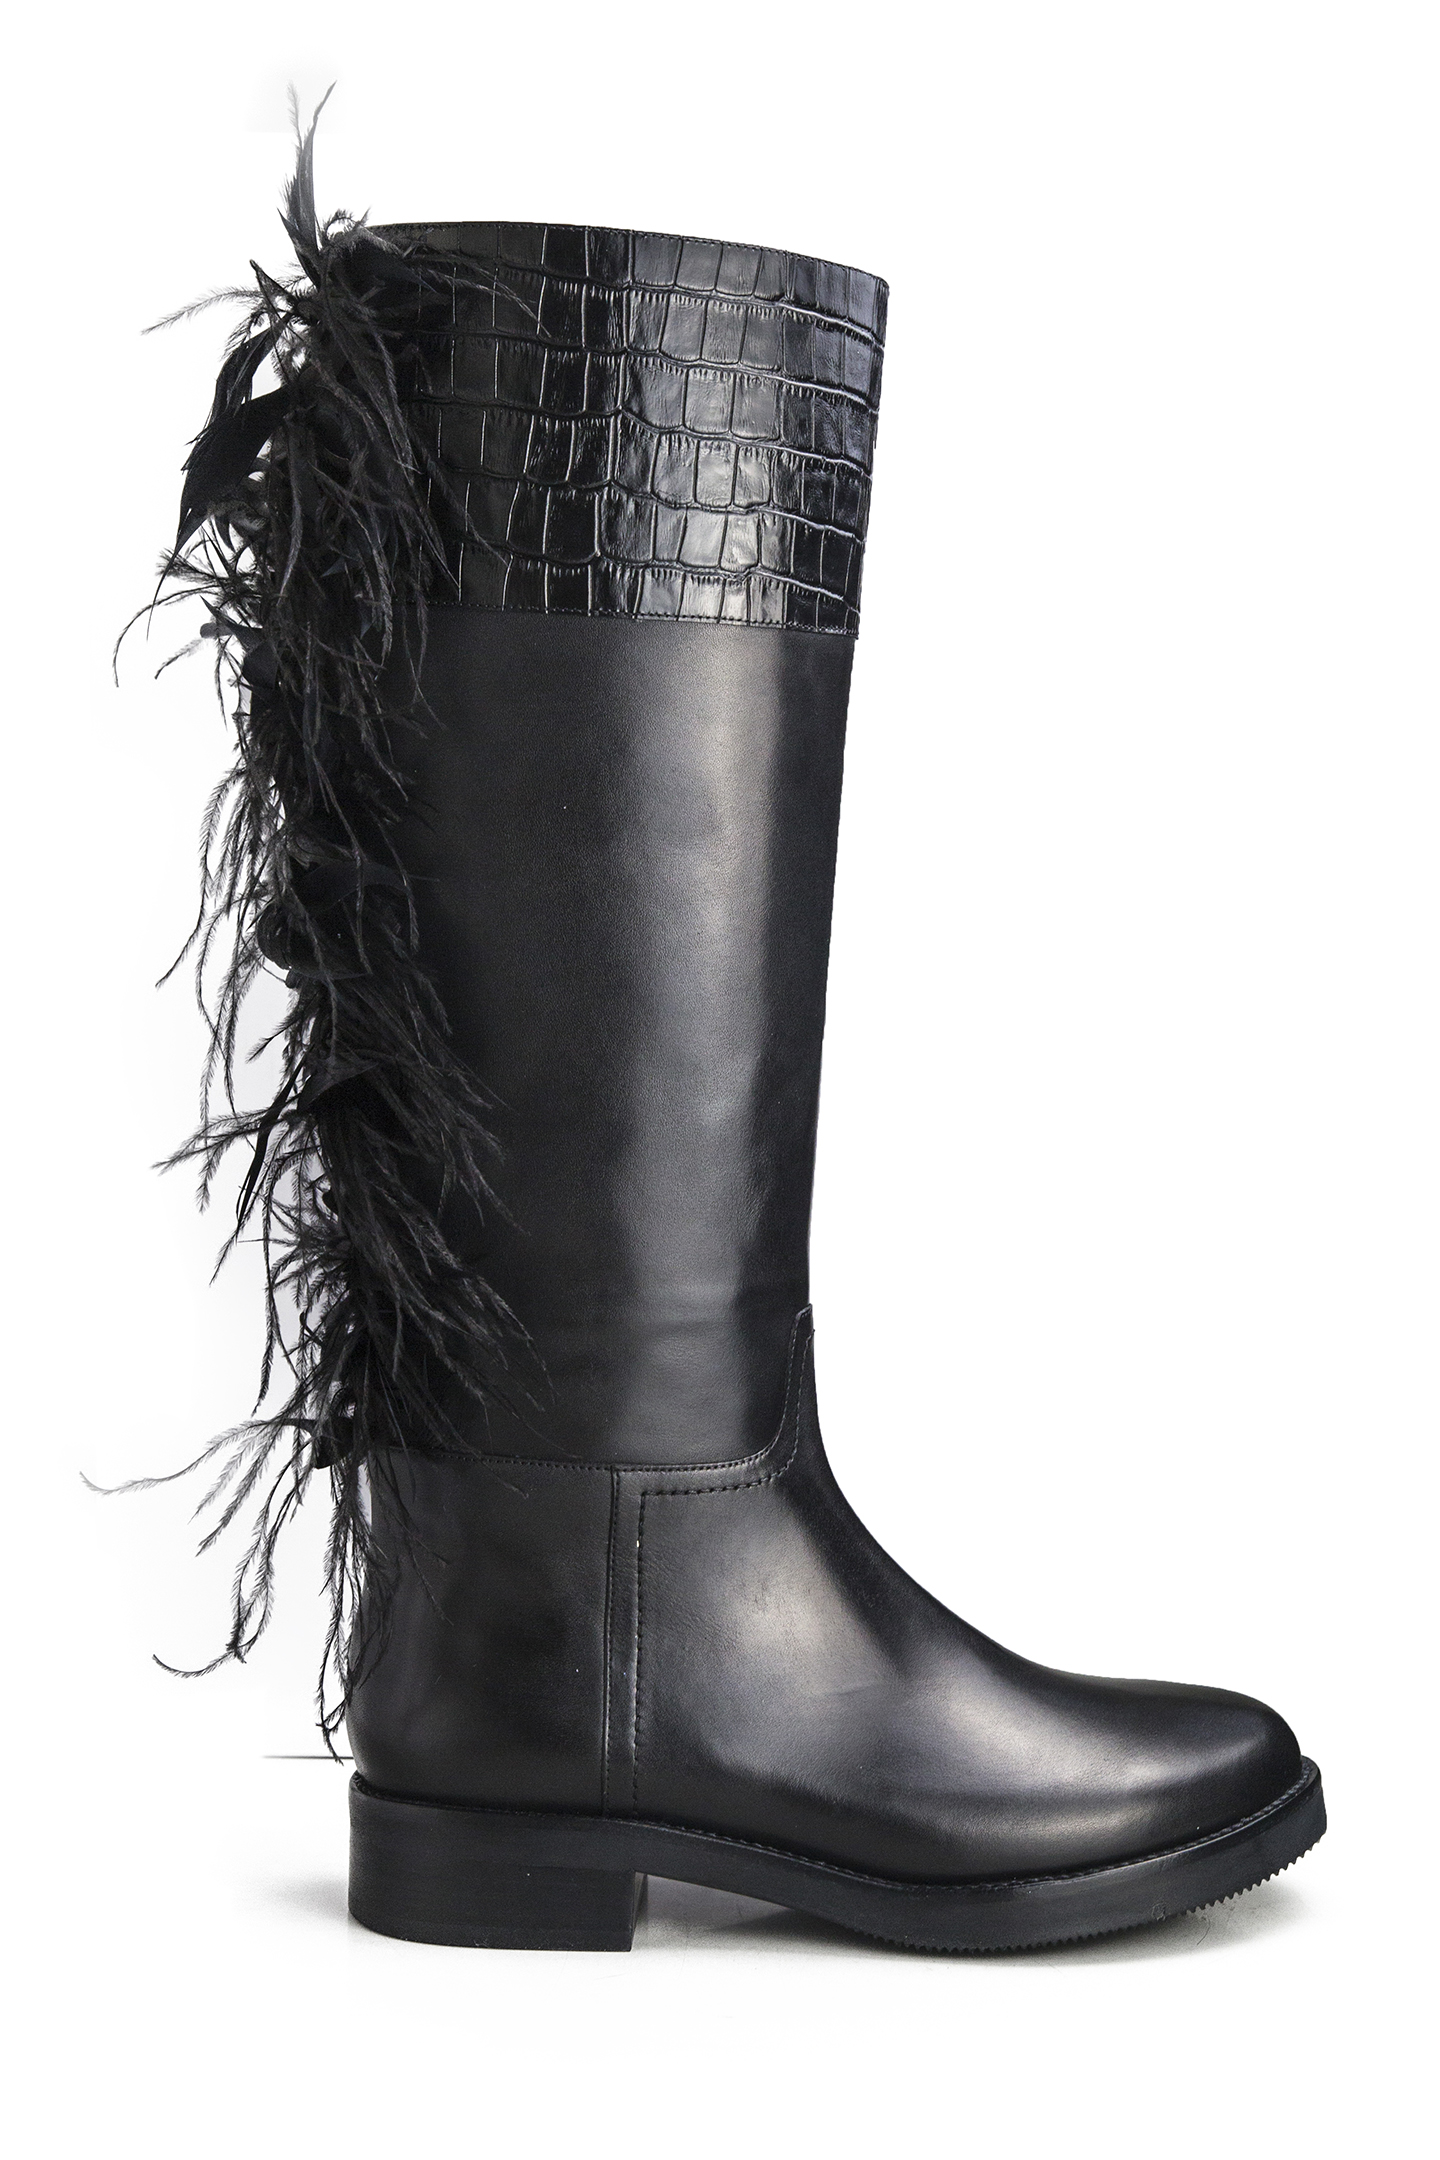 Valerie Boots